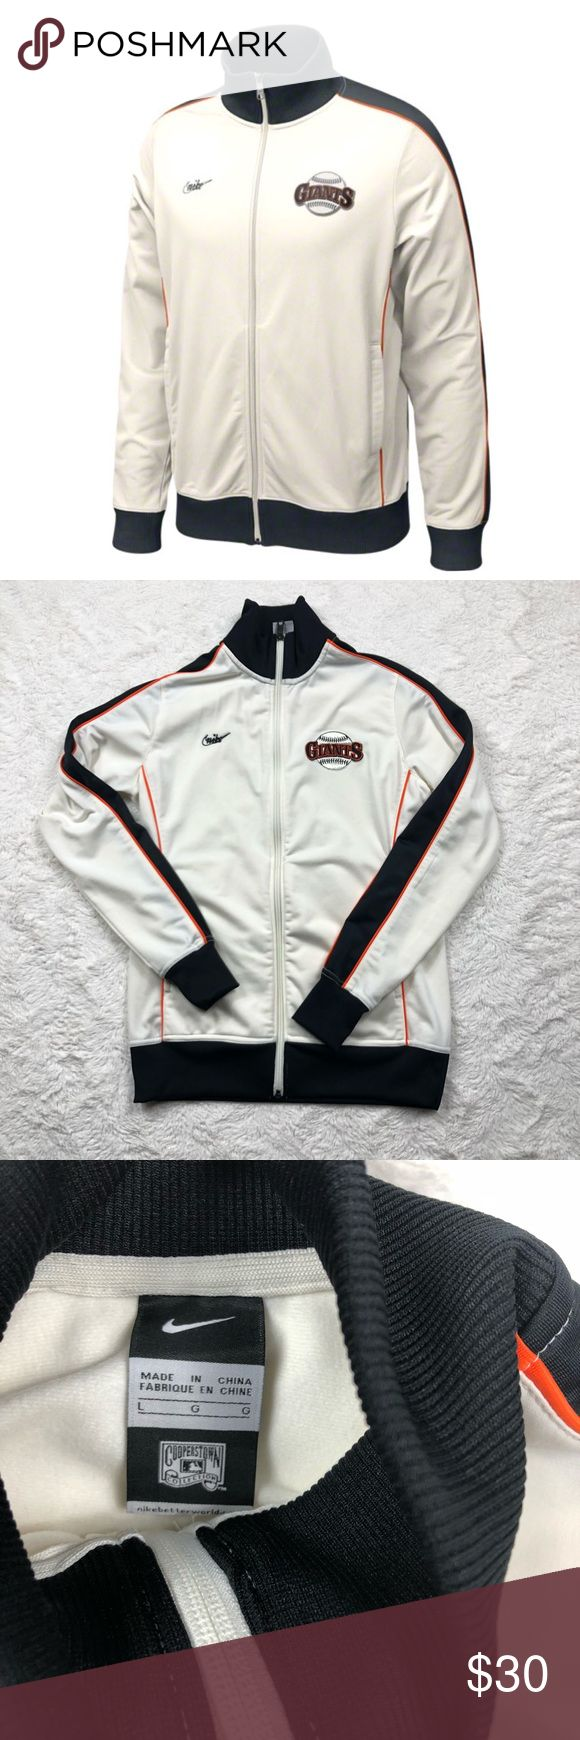 SF Giants Nike Cooperstown Retro Logo Track Jacket Condition: Very good. No stains, rips, or odors. Minimal signs of previously being worn. Please view listing pictures & additional questions are always welcomed. All items are honestly presented to the best of my knowledge, and are stored in a non-smoking environment. No returns Nike Jackets & Coats